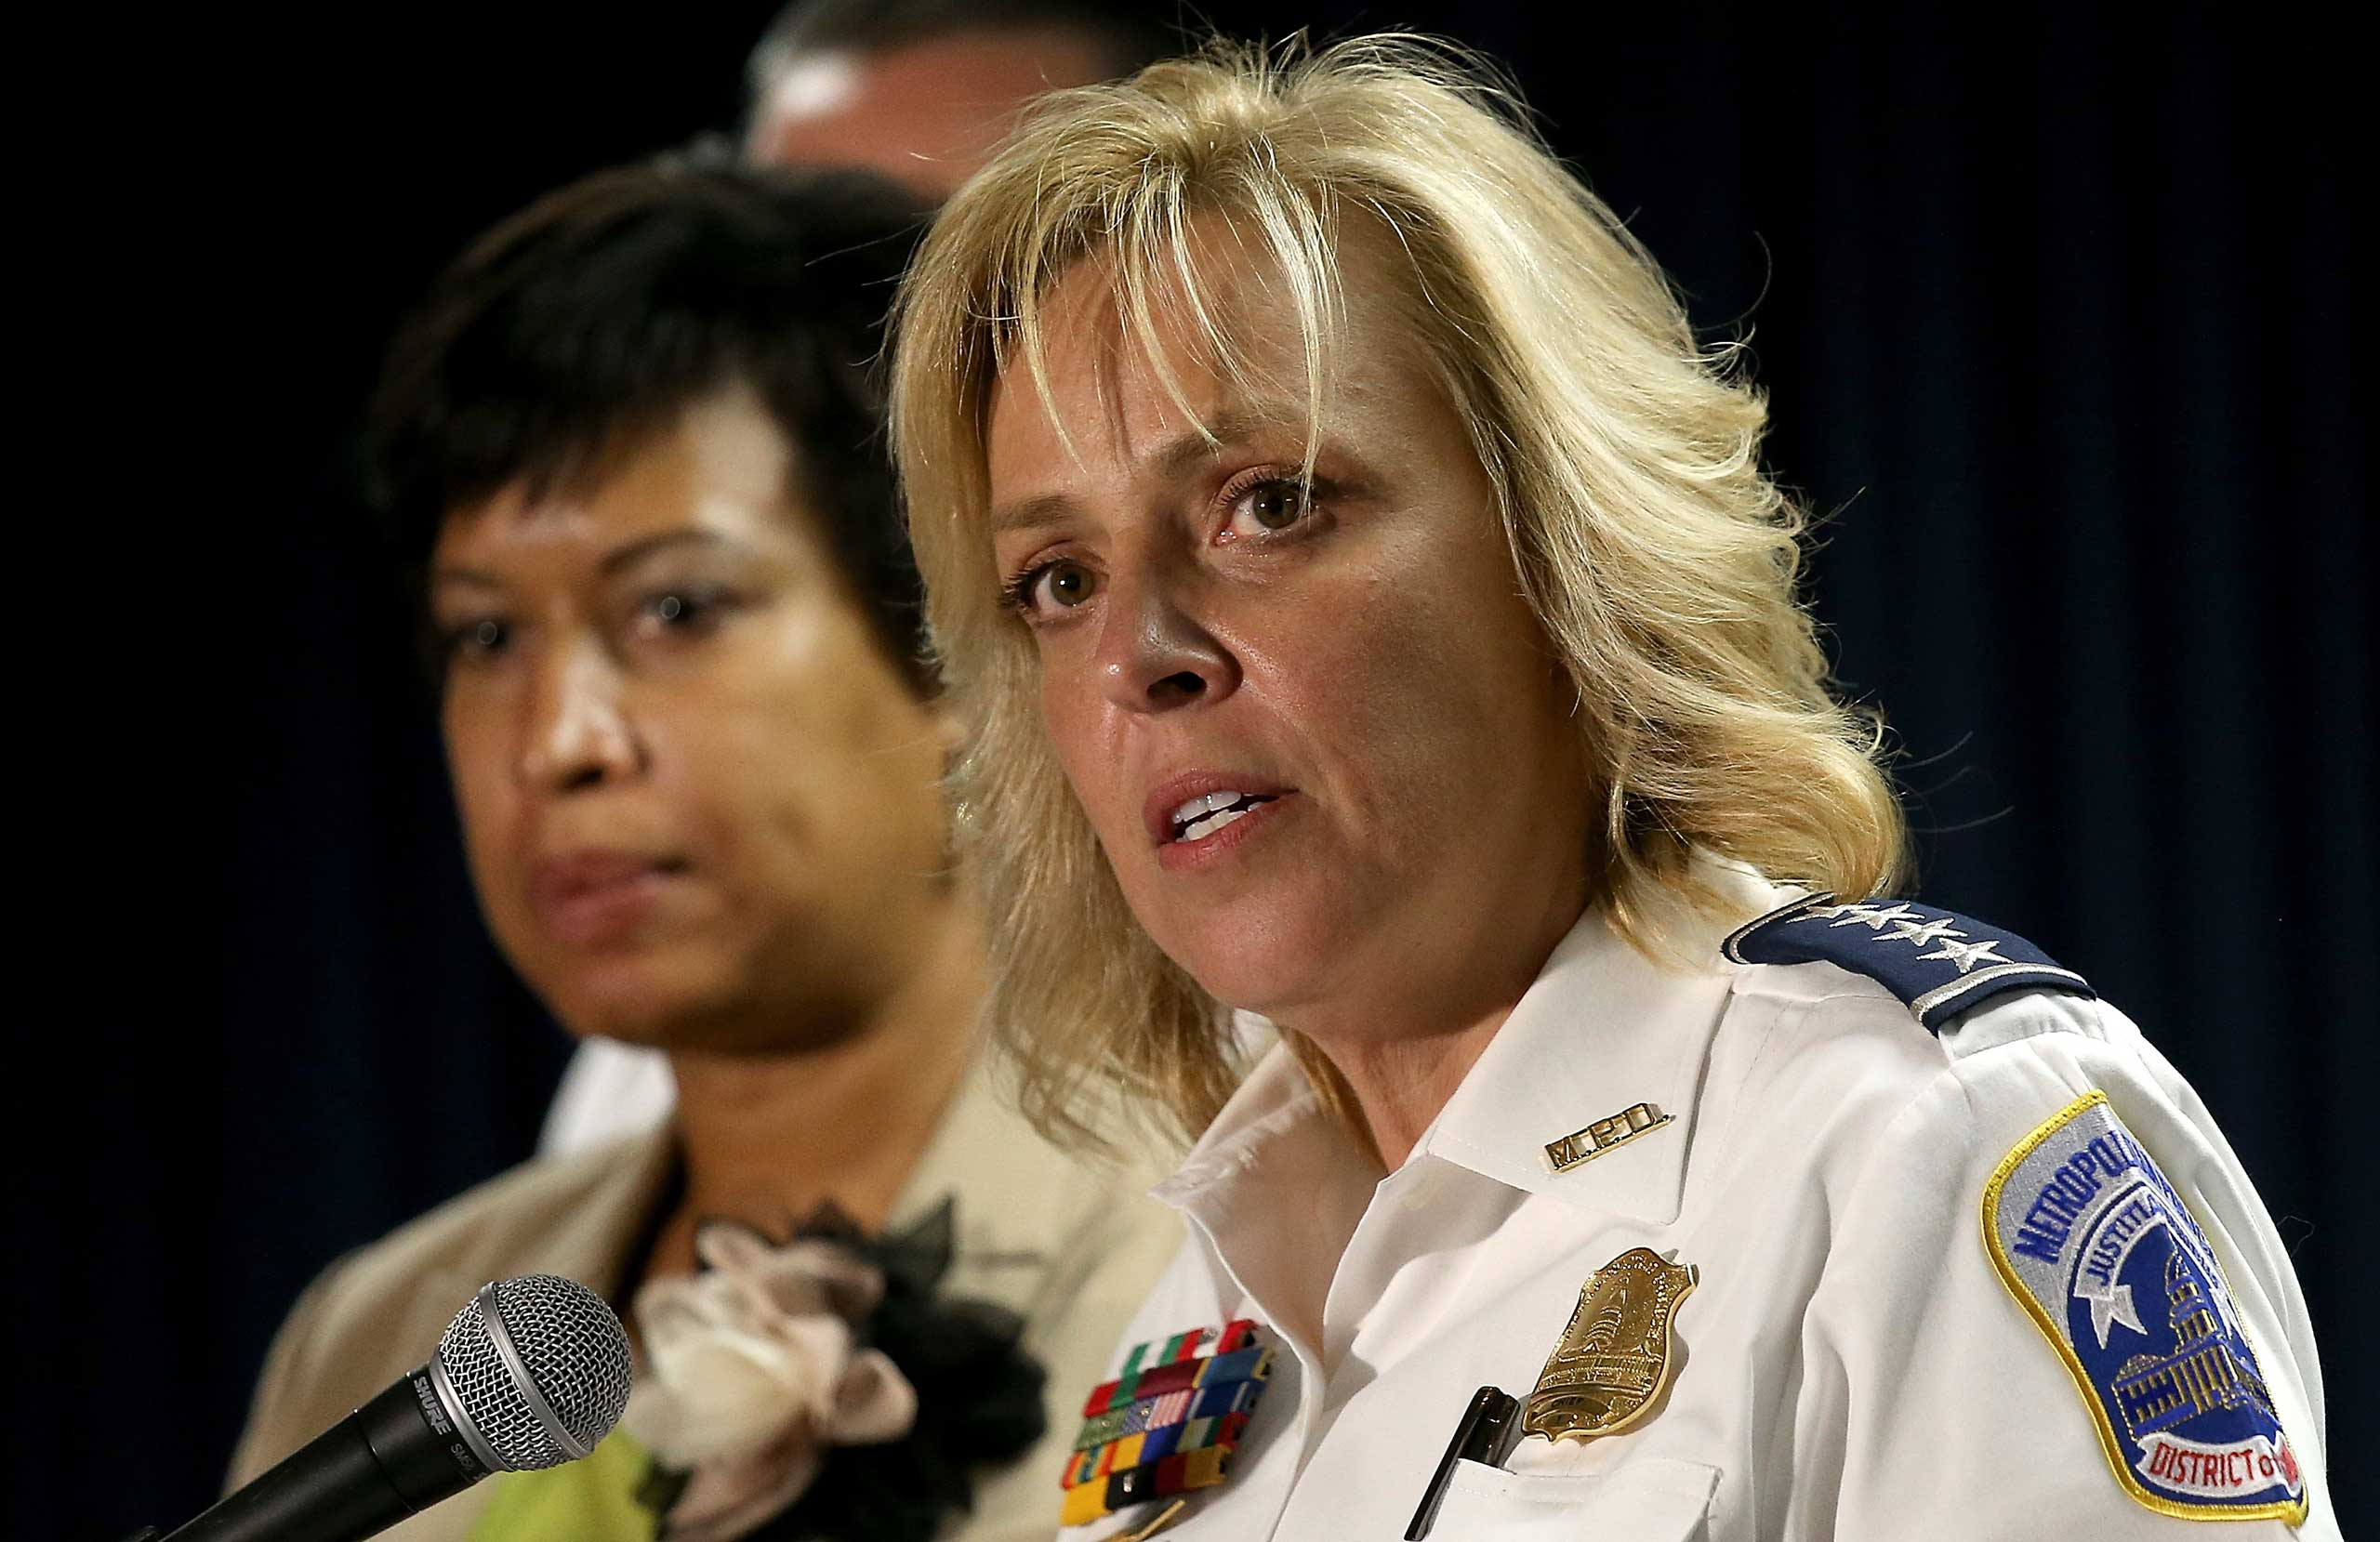 Chief of the Metropolitan Police Department Cathy Lanier speaks at a press conference at police headquarters in Washington, DC., May 21, 2015